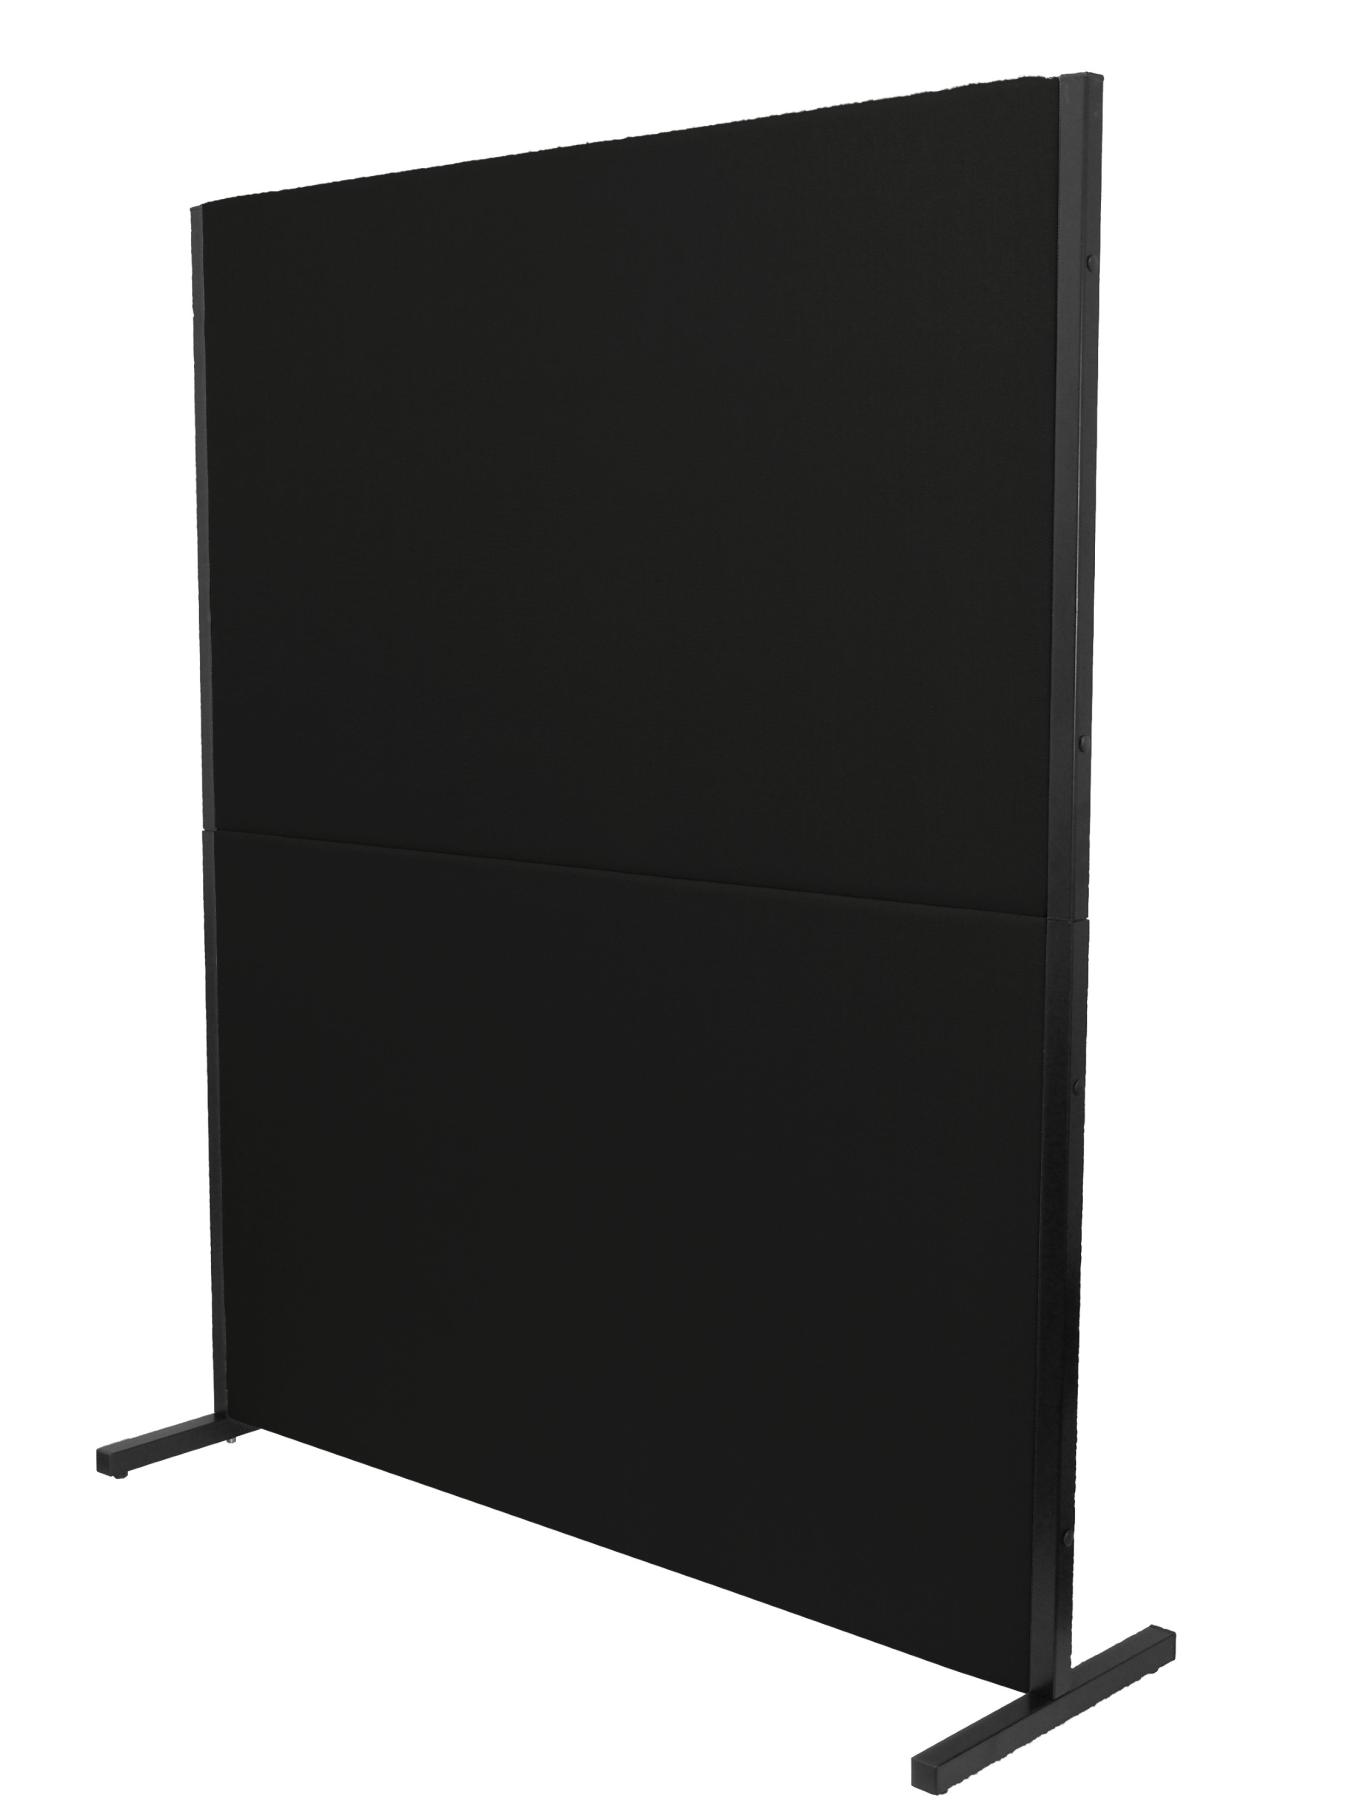 Folding Screen Separator P Ara Offices And Working Centers, Detachable And With Black Color Structure Upholstered In Tissue Ara